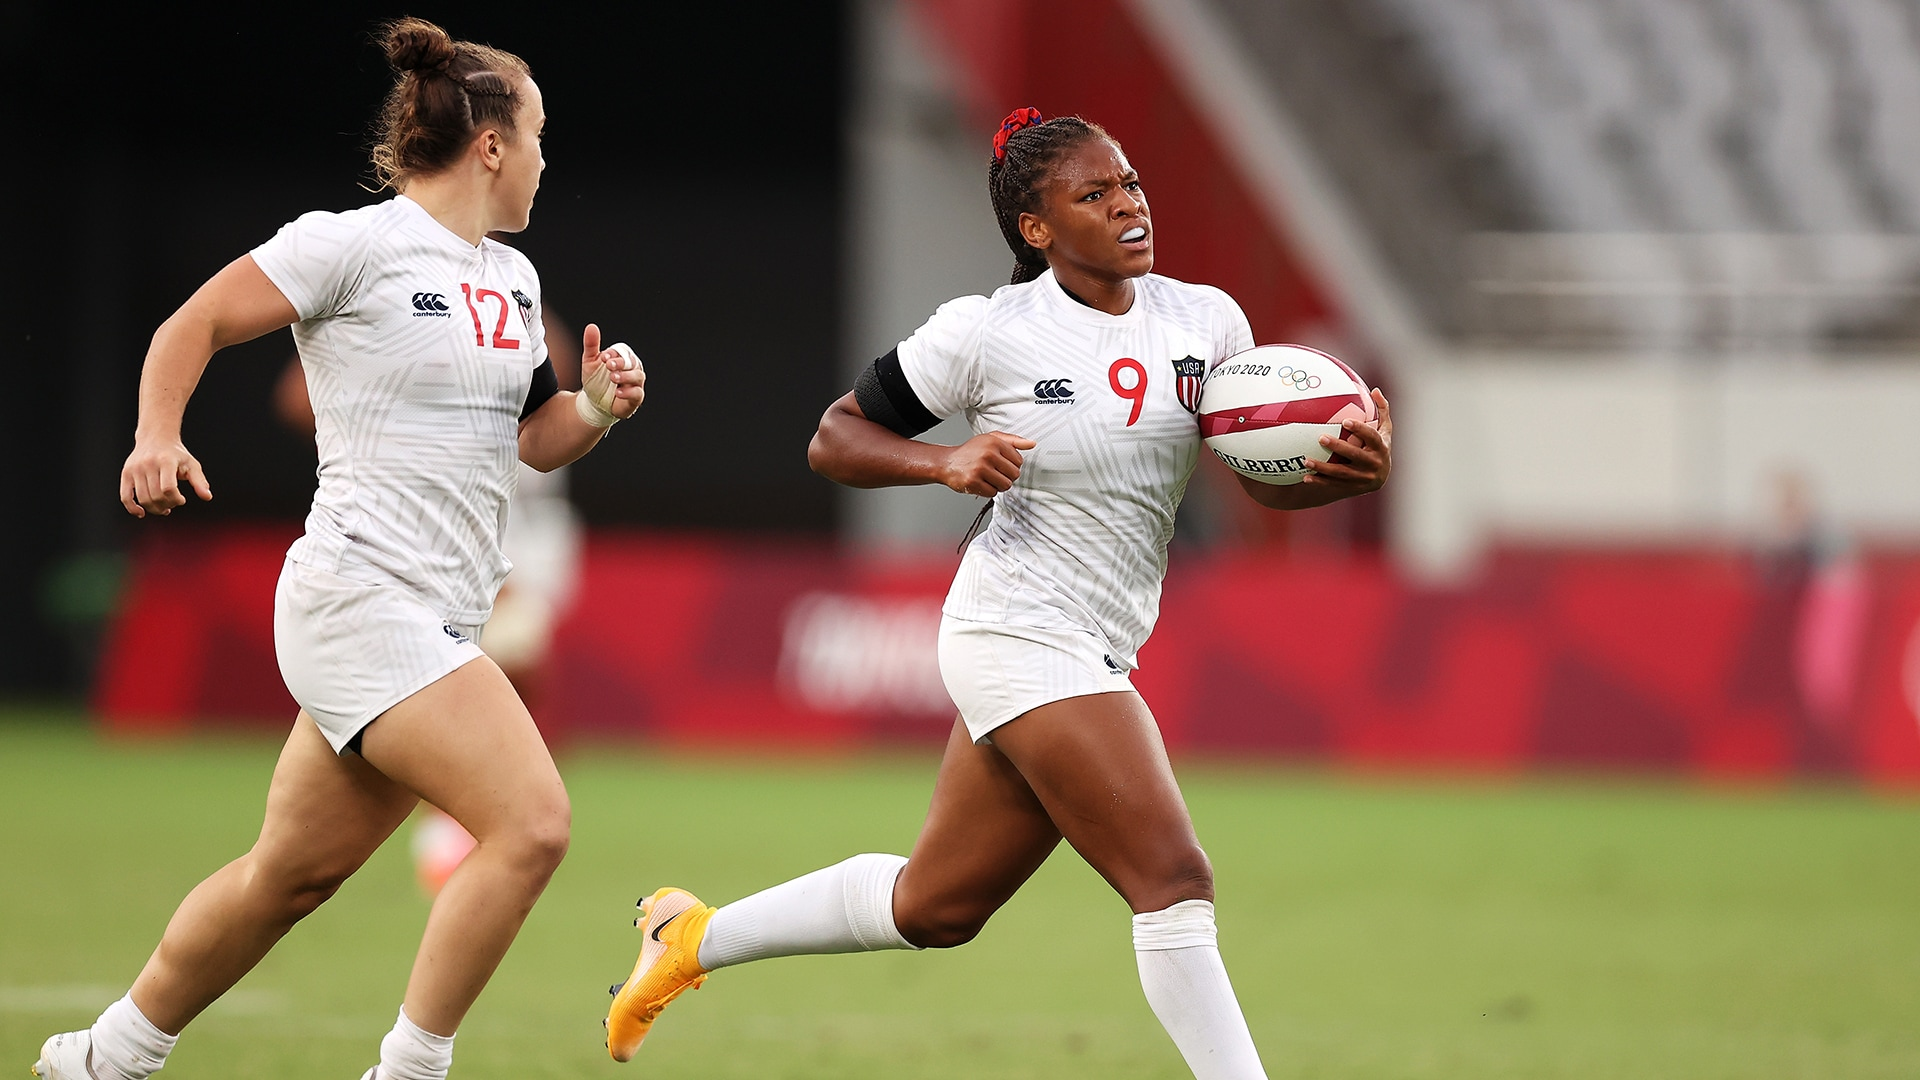 United States secures quarterfinal spot with women's rugby win vs. Japan